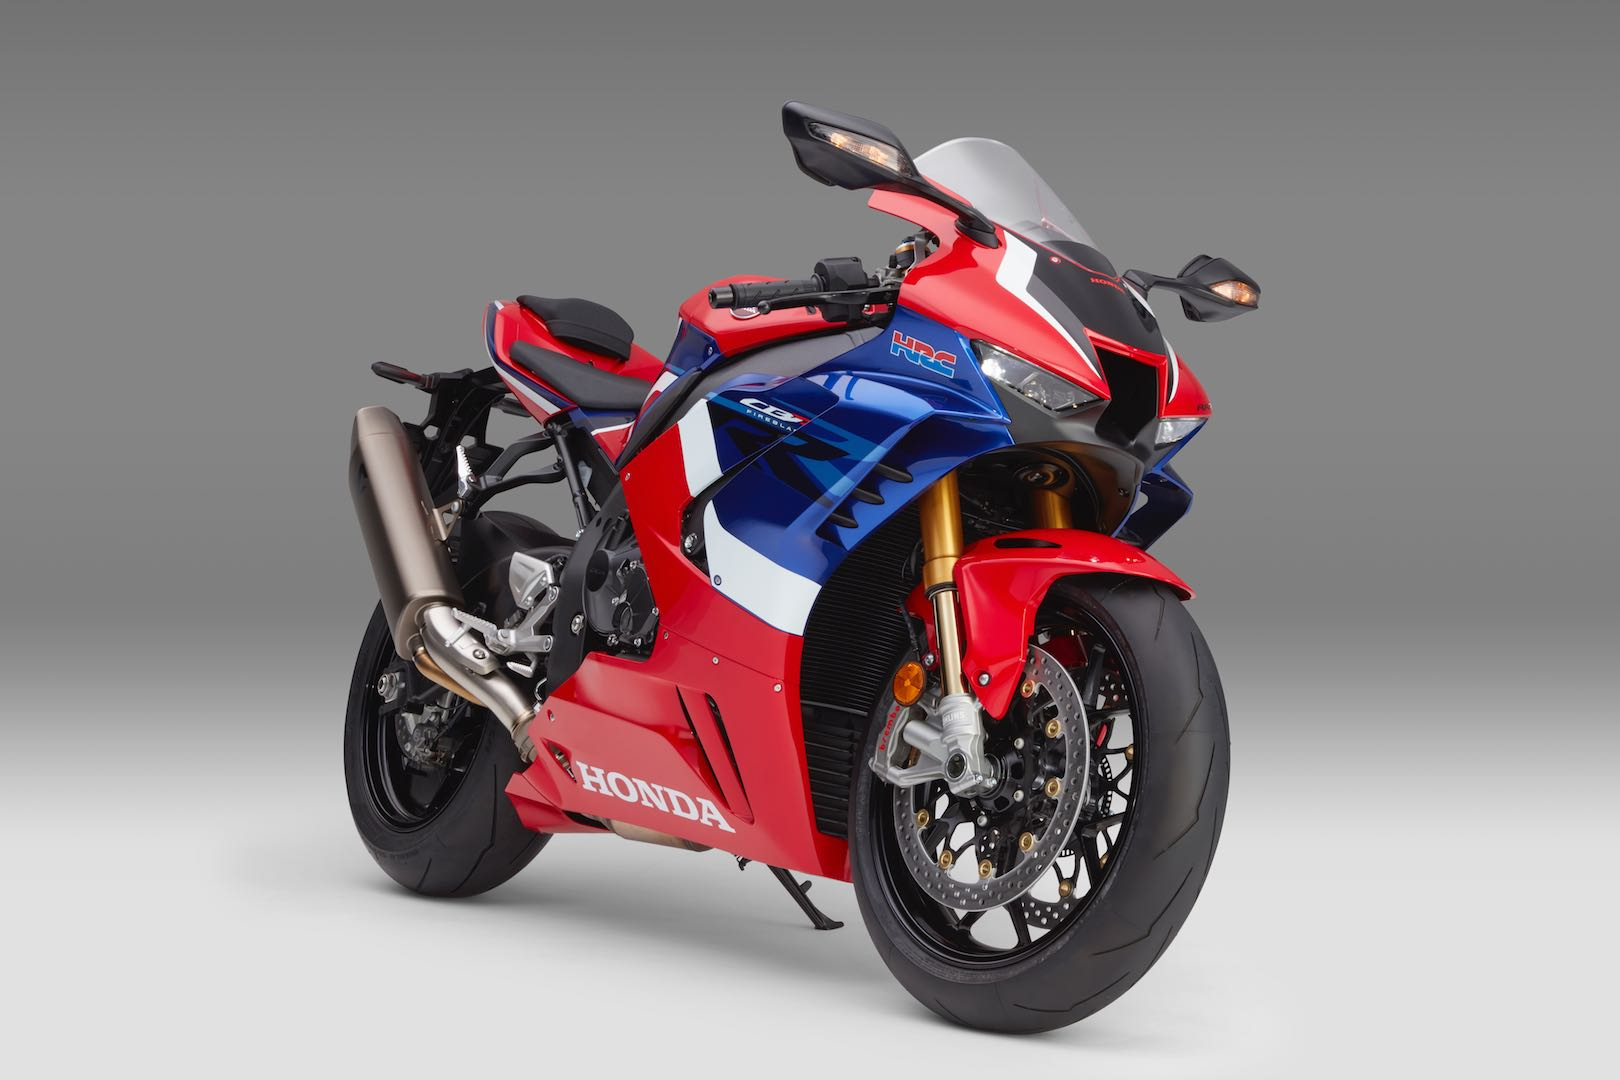 2021 Honda Cbr1000rr R Fireblade Sp First Look With Video